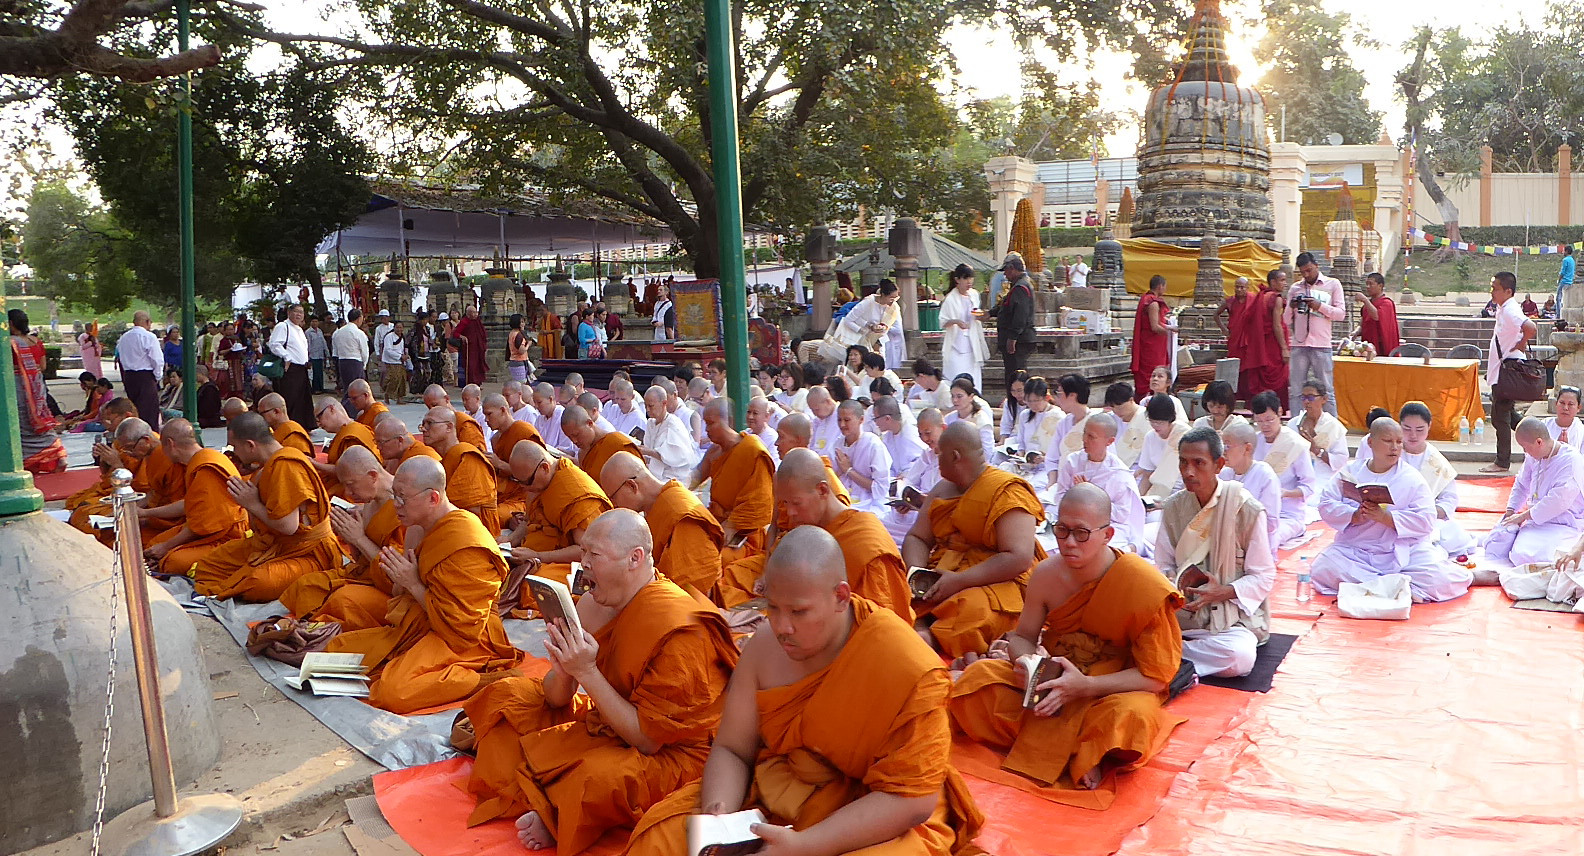 Buddhist devotees from Thailand under the Bodhi Tree